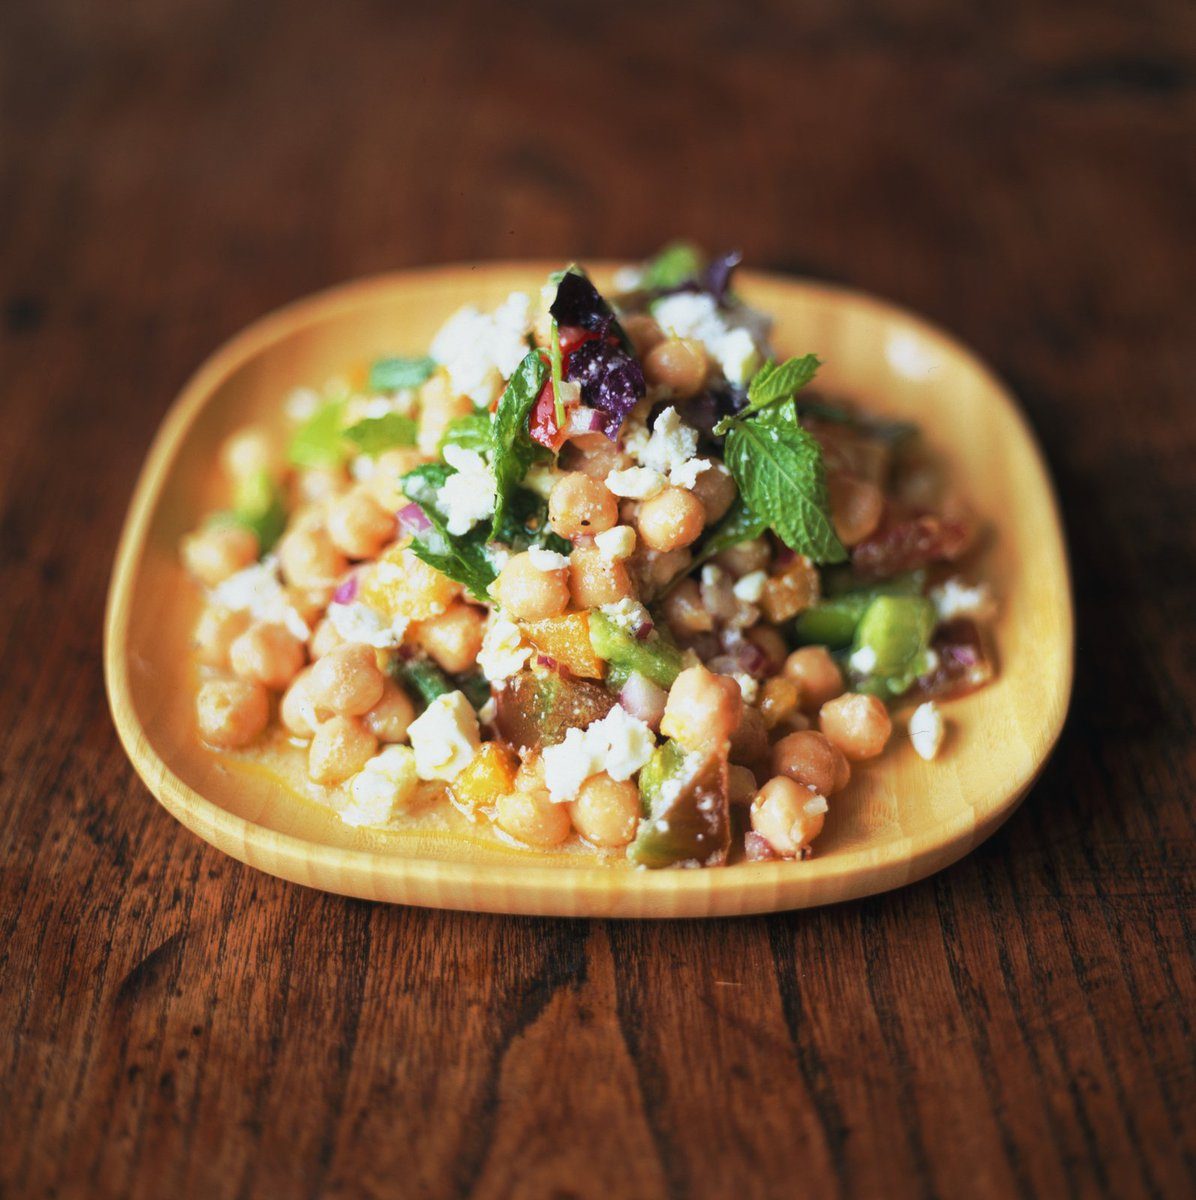 If you ask me, we just don't use chickpeas in enough stuff – try this salad https://t.co/vMuNocOJYA #recipeoftheday https://t.co/DQCUyh7UT7